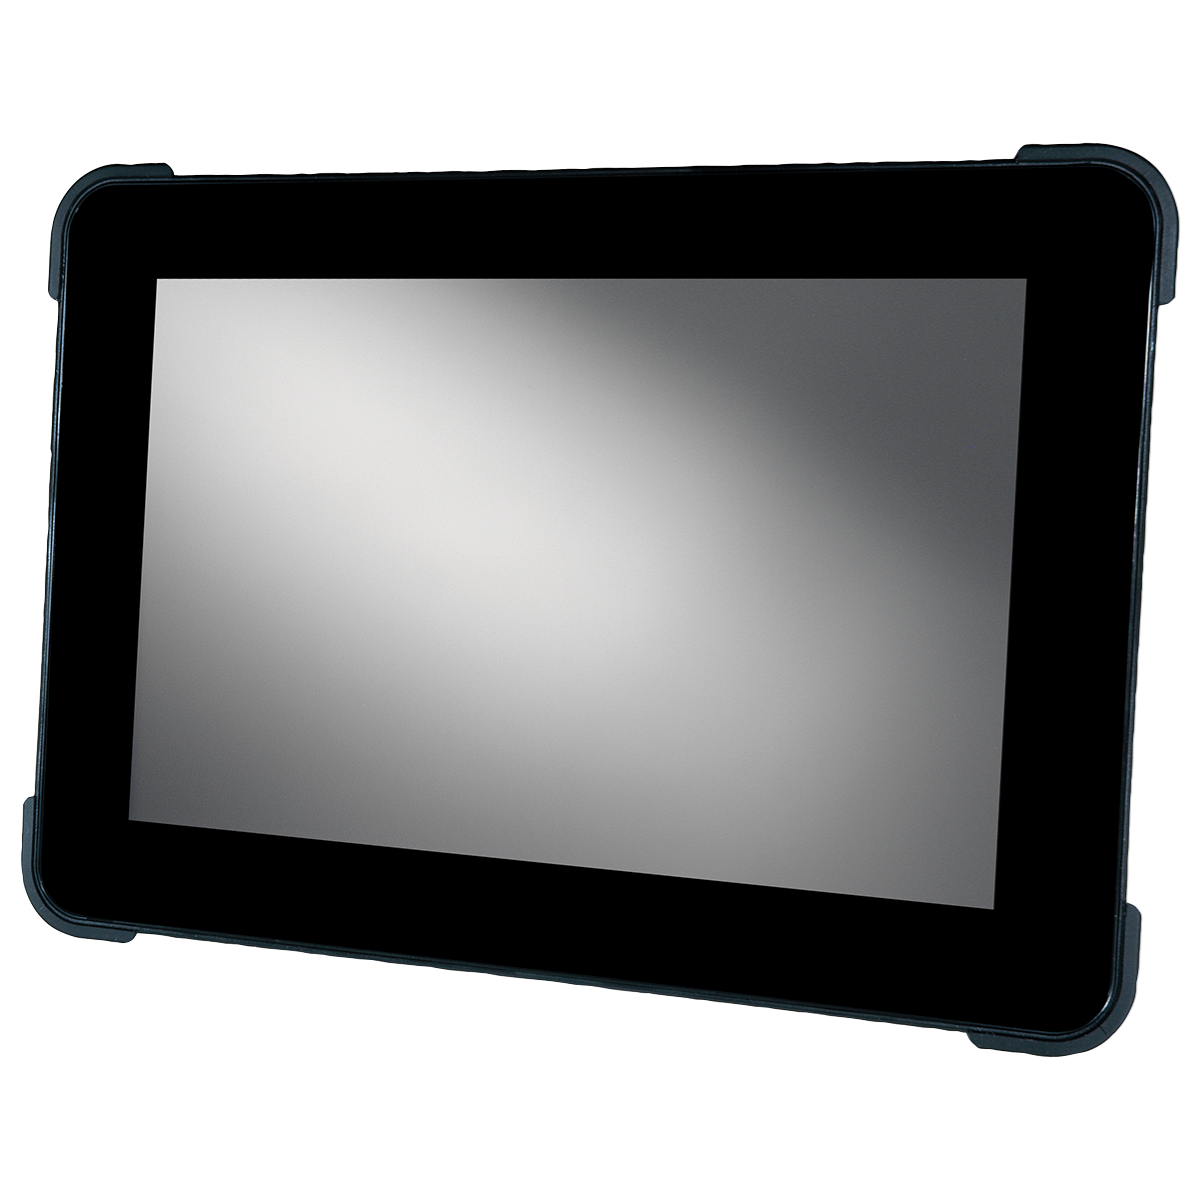 New Hisense HM618 Tablet Released